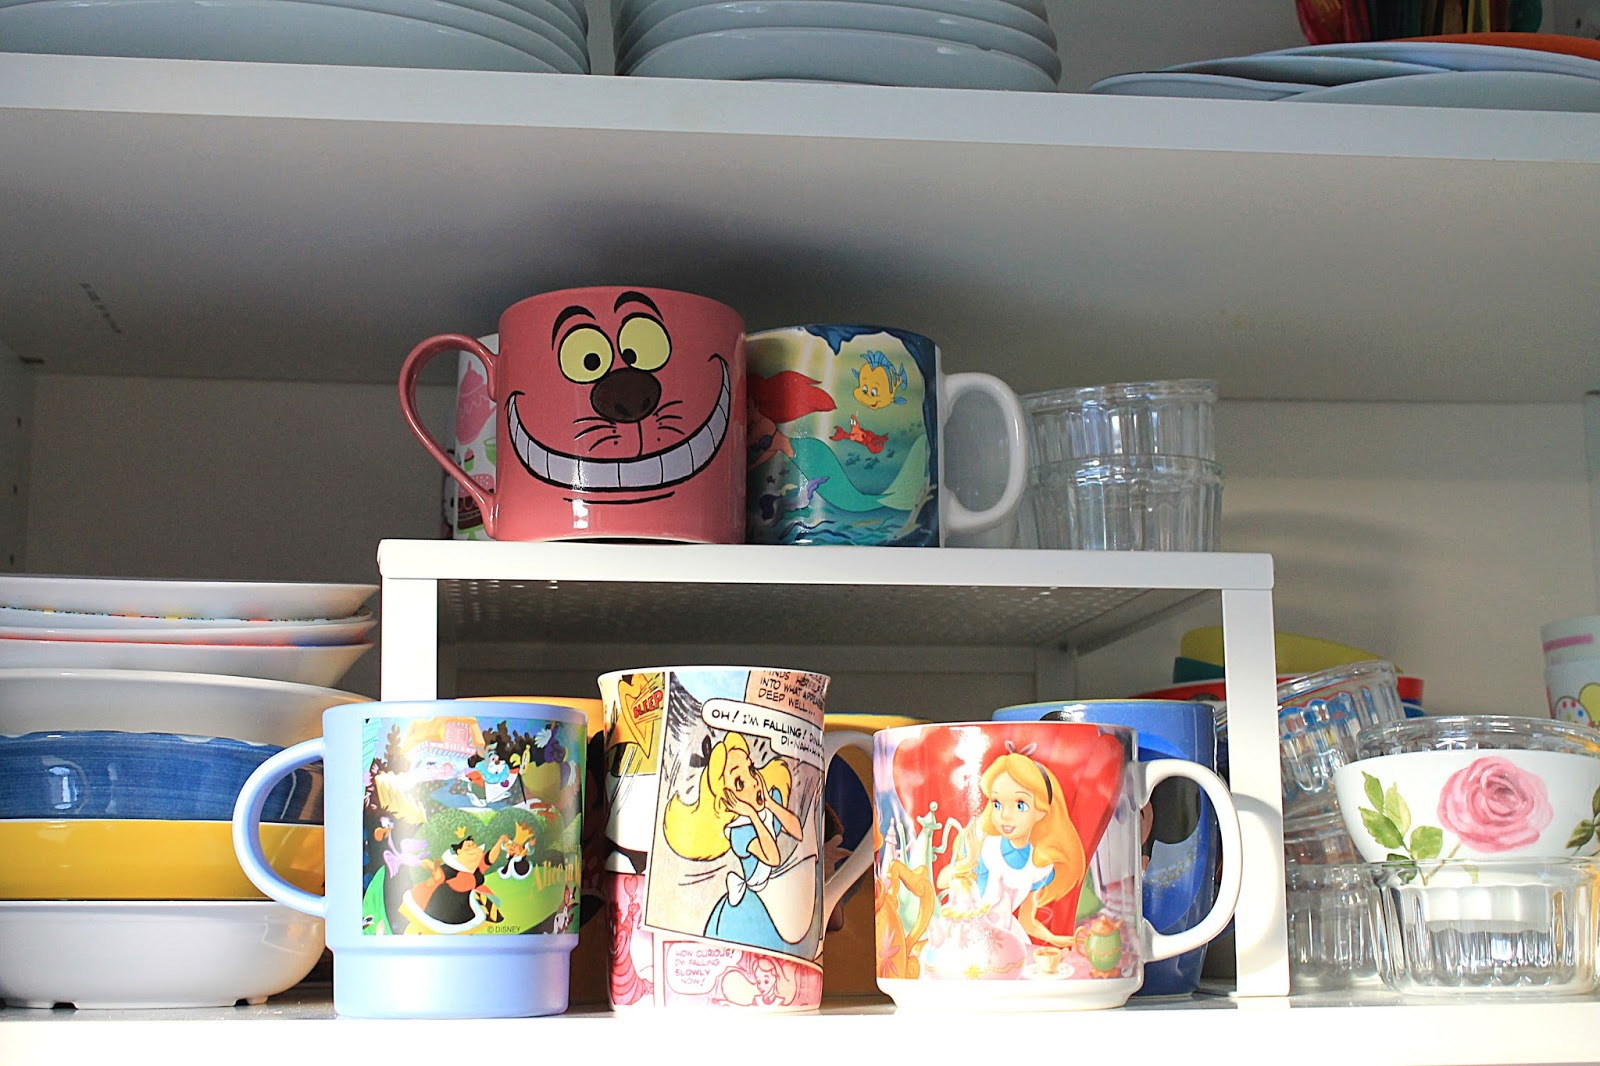 dina fragola: my alice in wonderland collection - in the kitchen